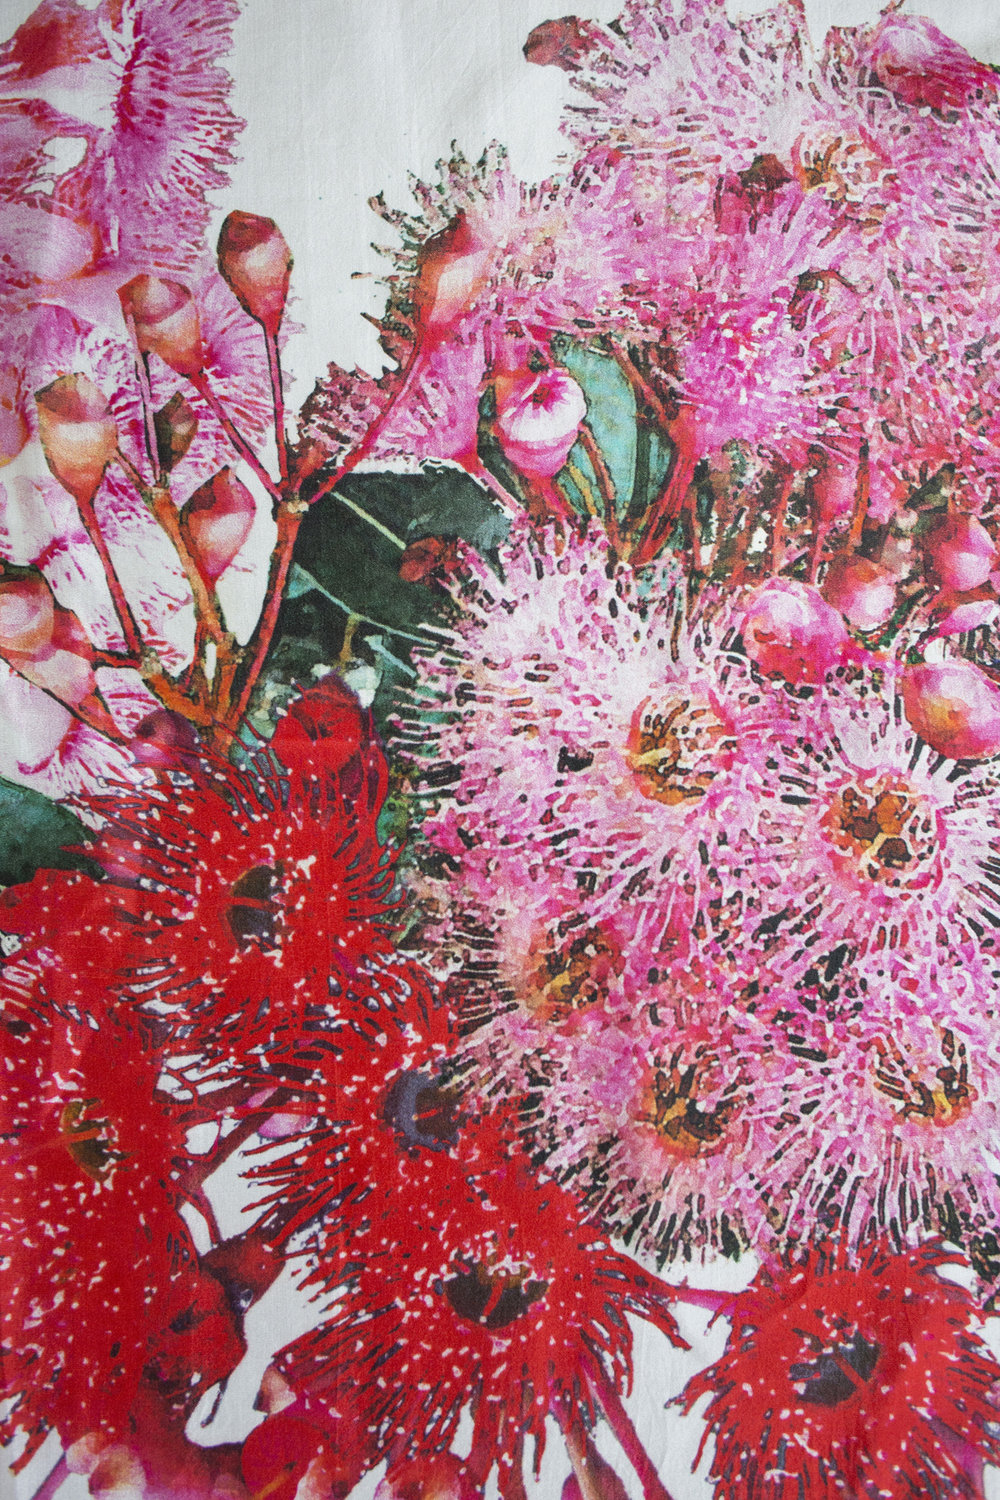 Gum Blossoms by Pip Wilkinson